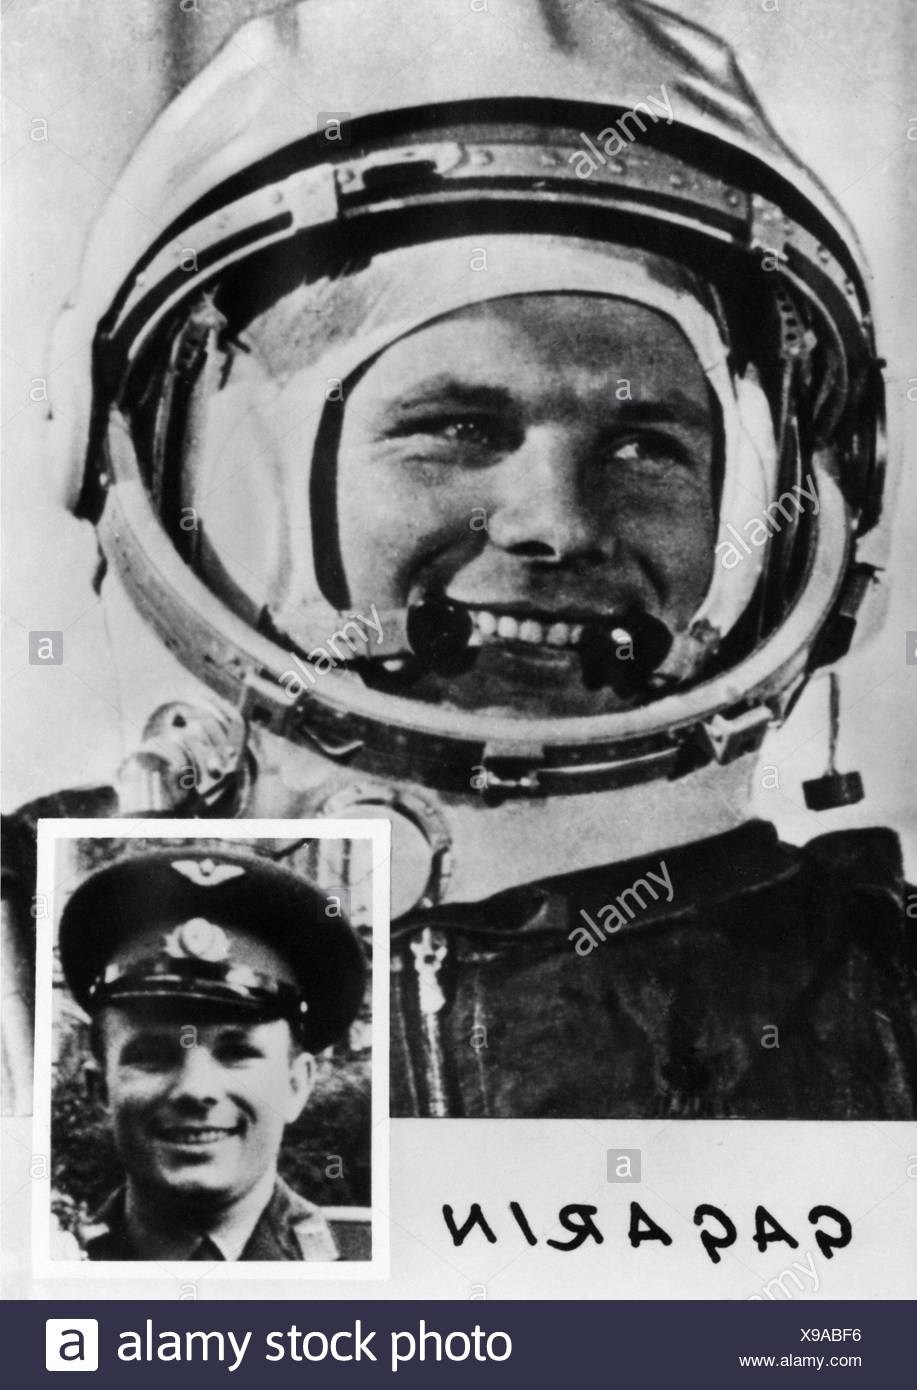 Gagarin, Yuri, 9.3.1934 - 27.3.1968, Soviet spaceman (cosmonaut), portrait, Additional-Rights-Clearances-NA - Stock Image